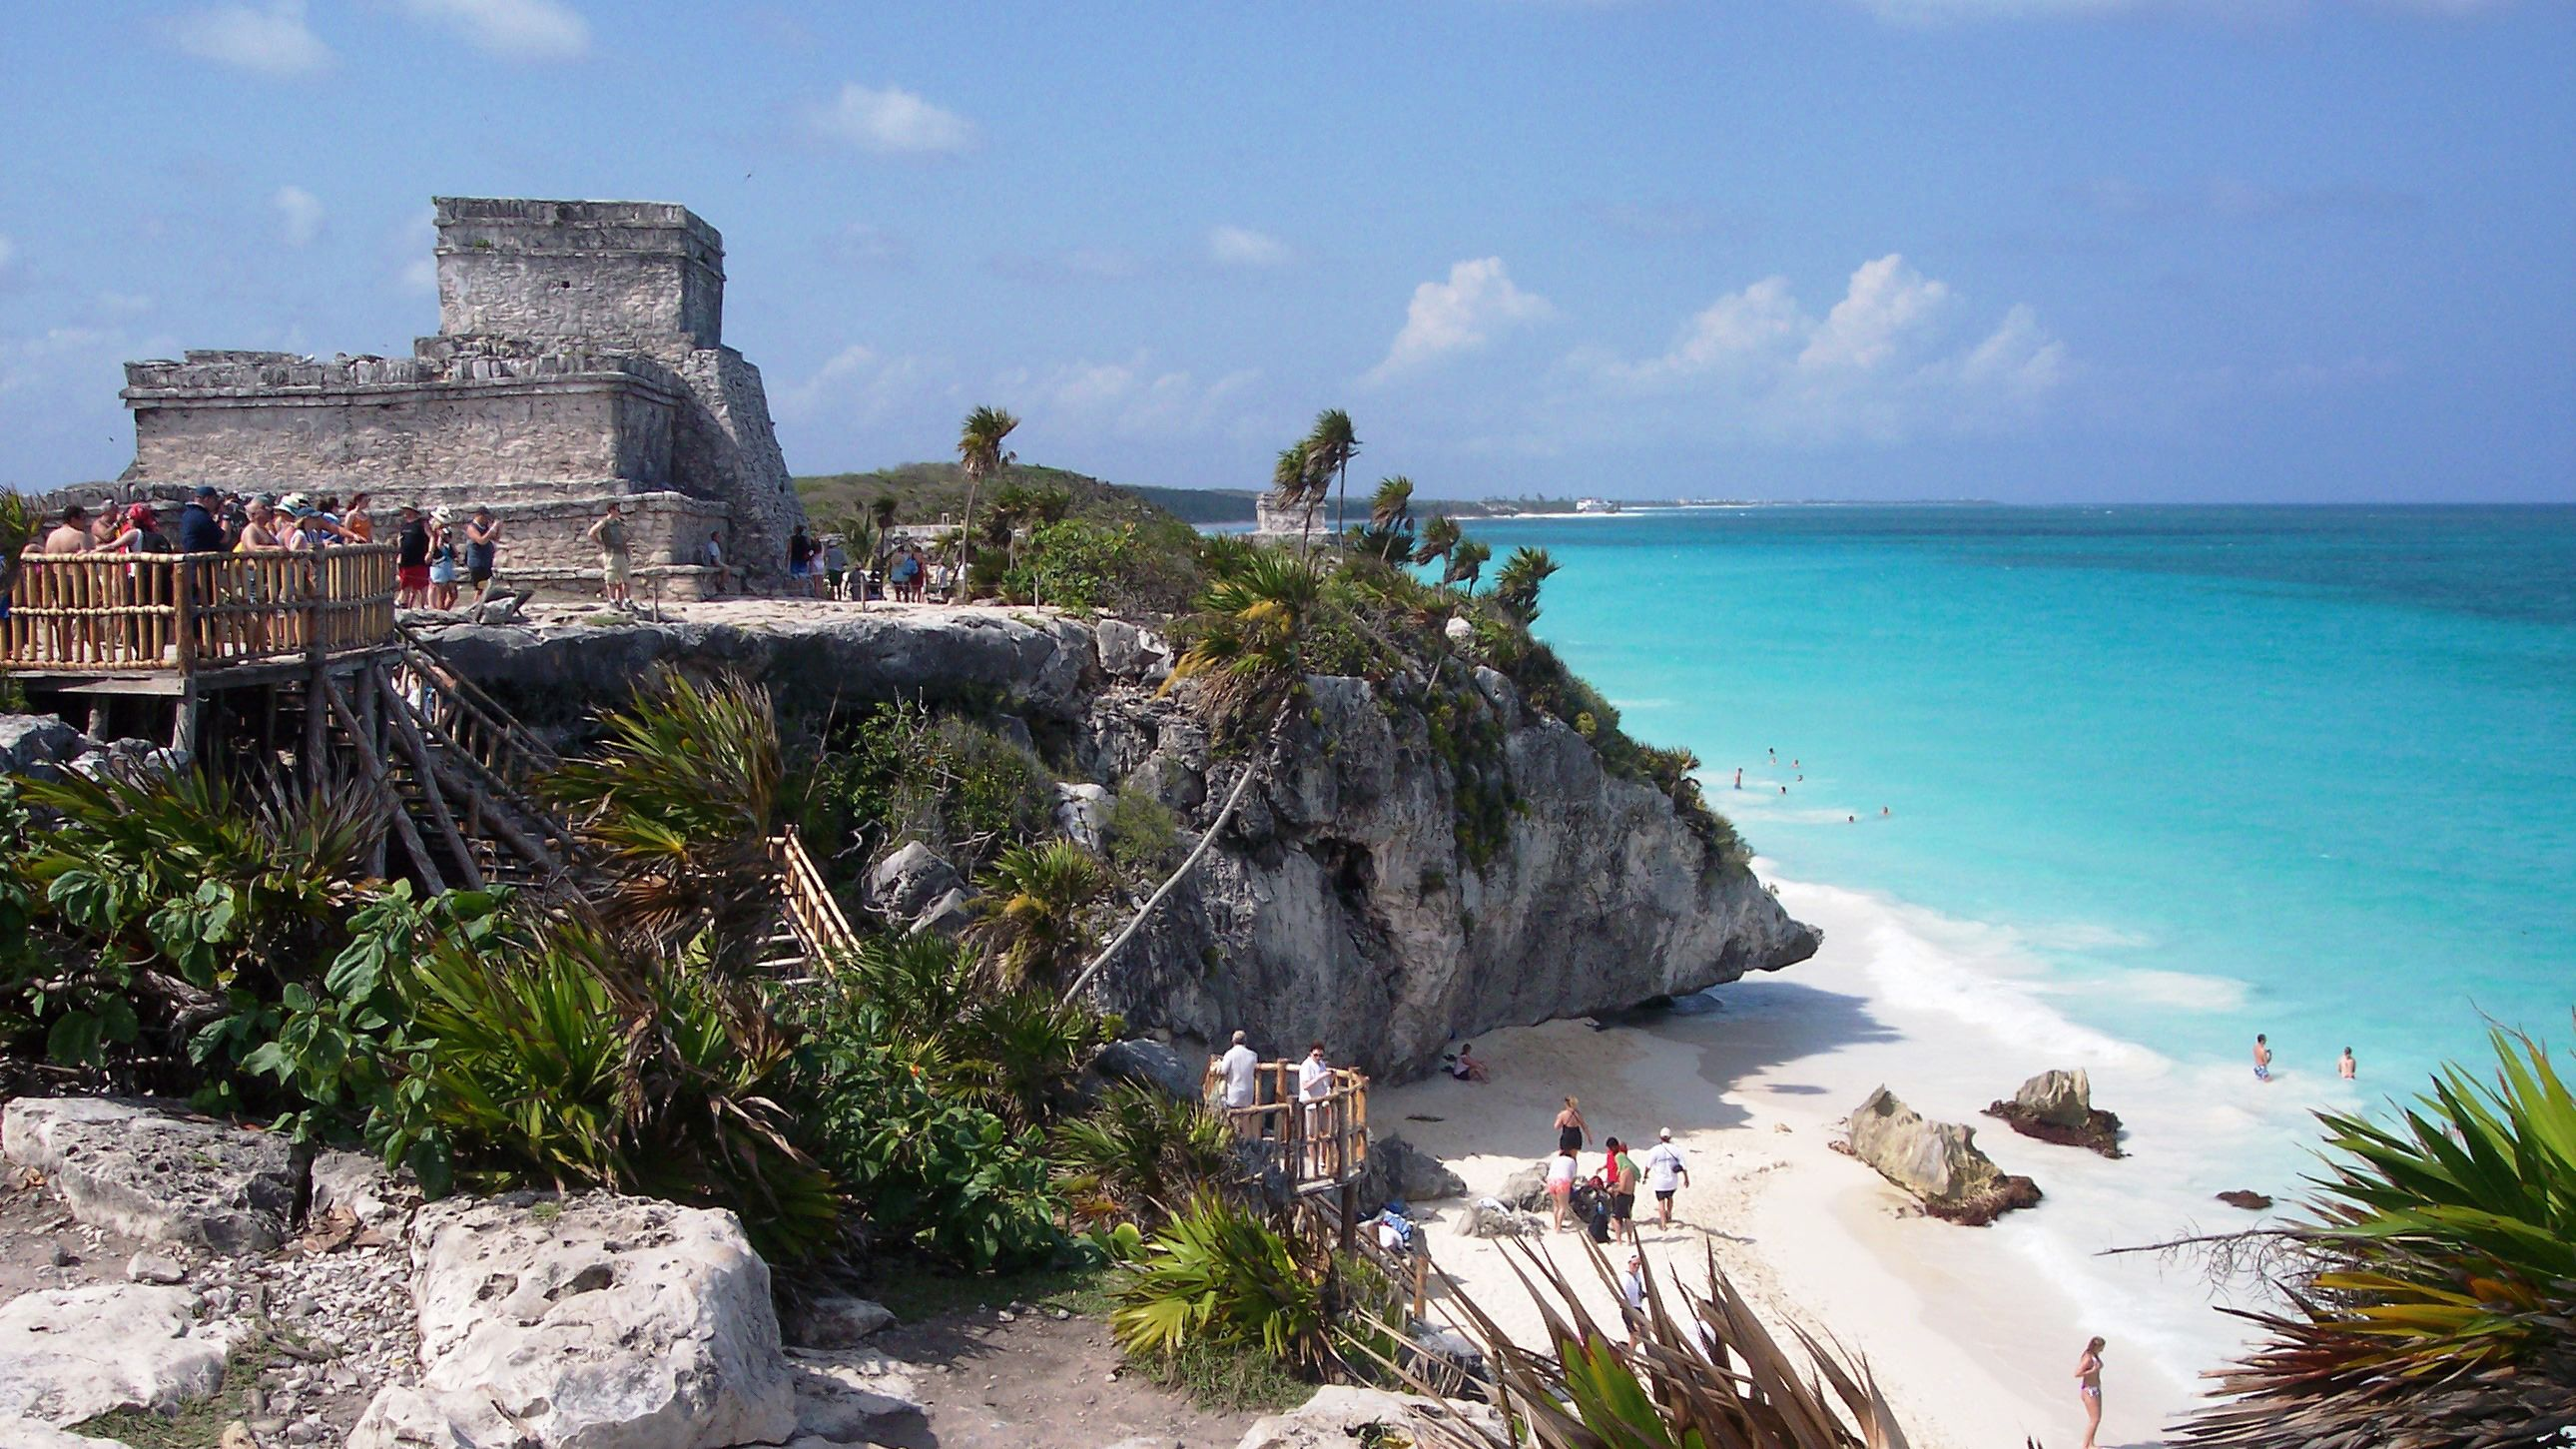 The ruins of Tulum and the beach below